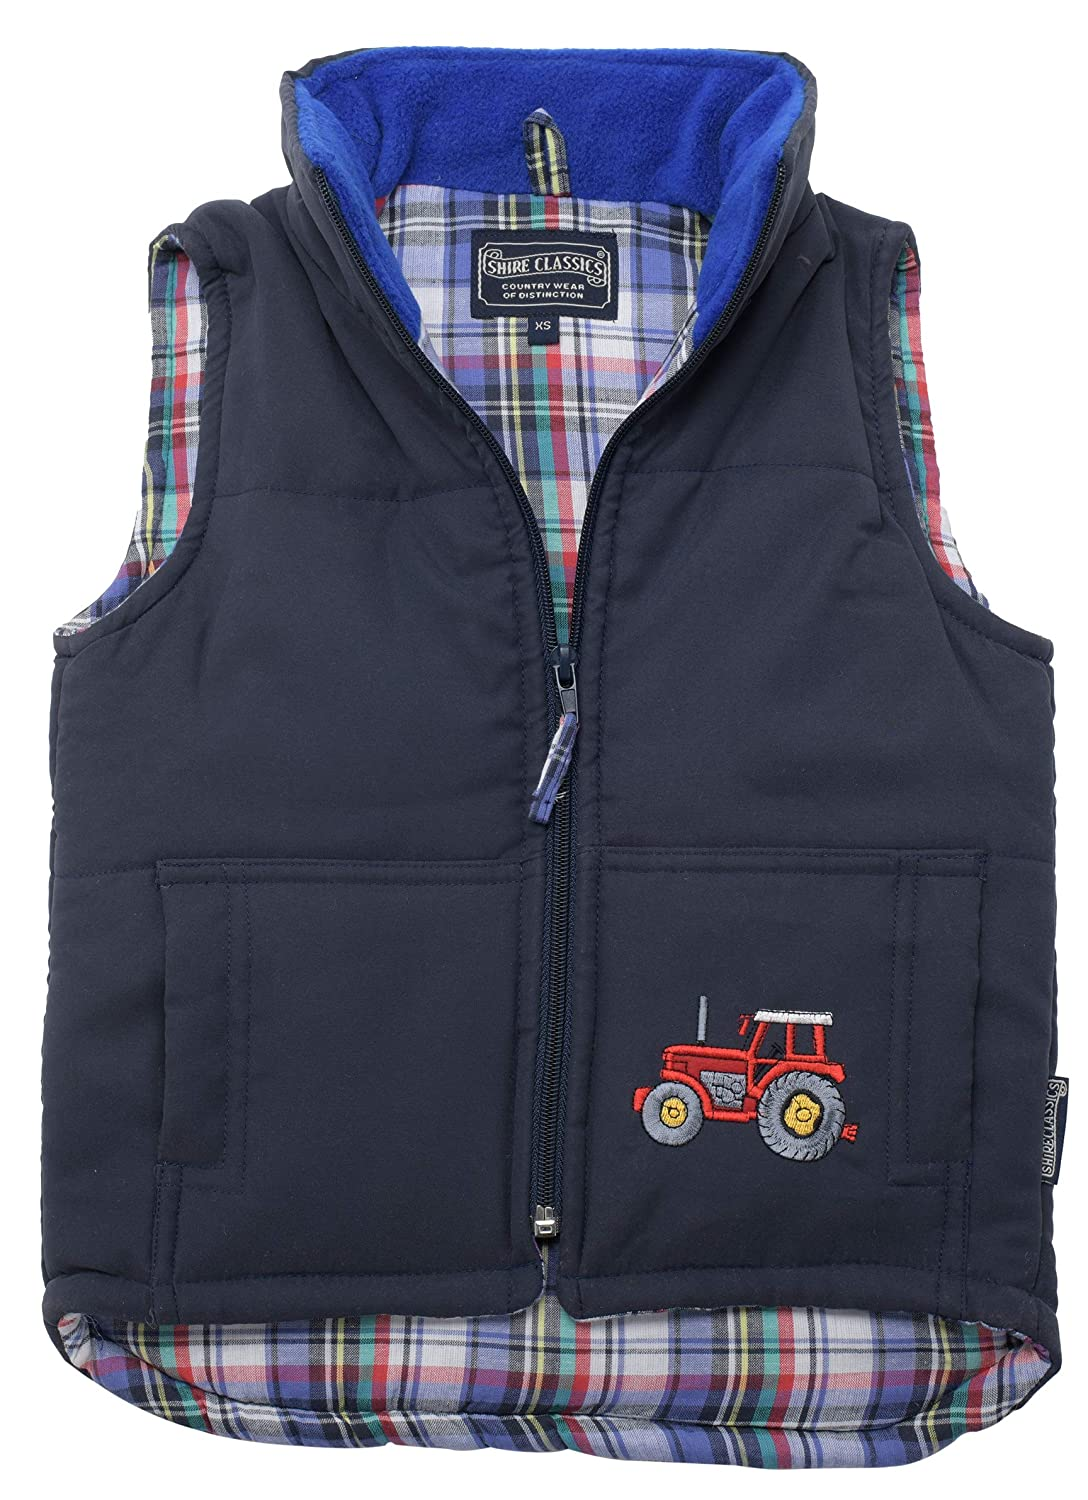 Lambland Childrens/Childs / Boy's Embroidered Tractor Gilet/Body Warmer Blue